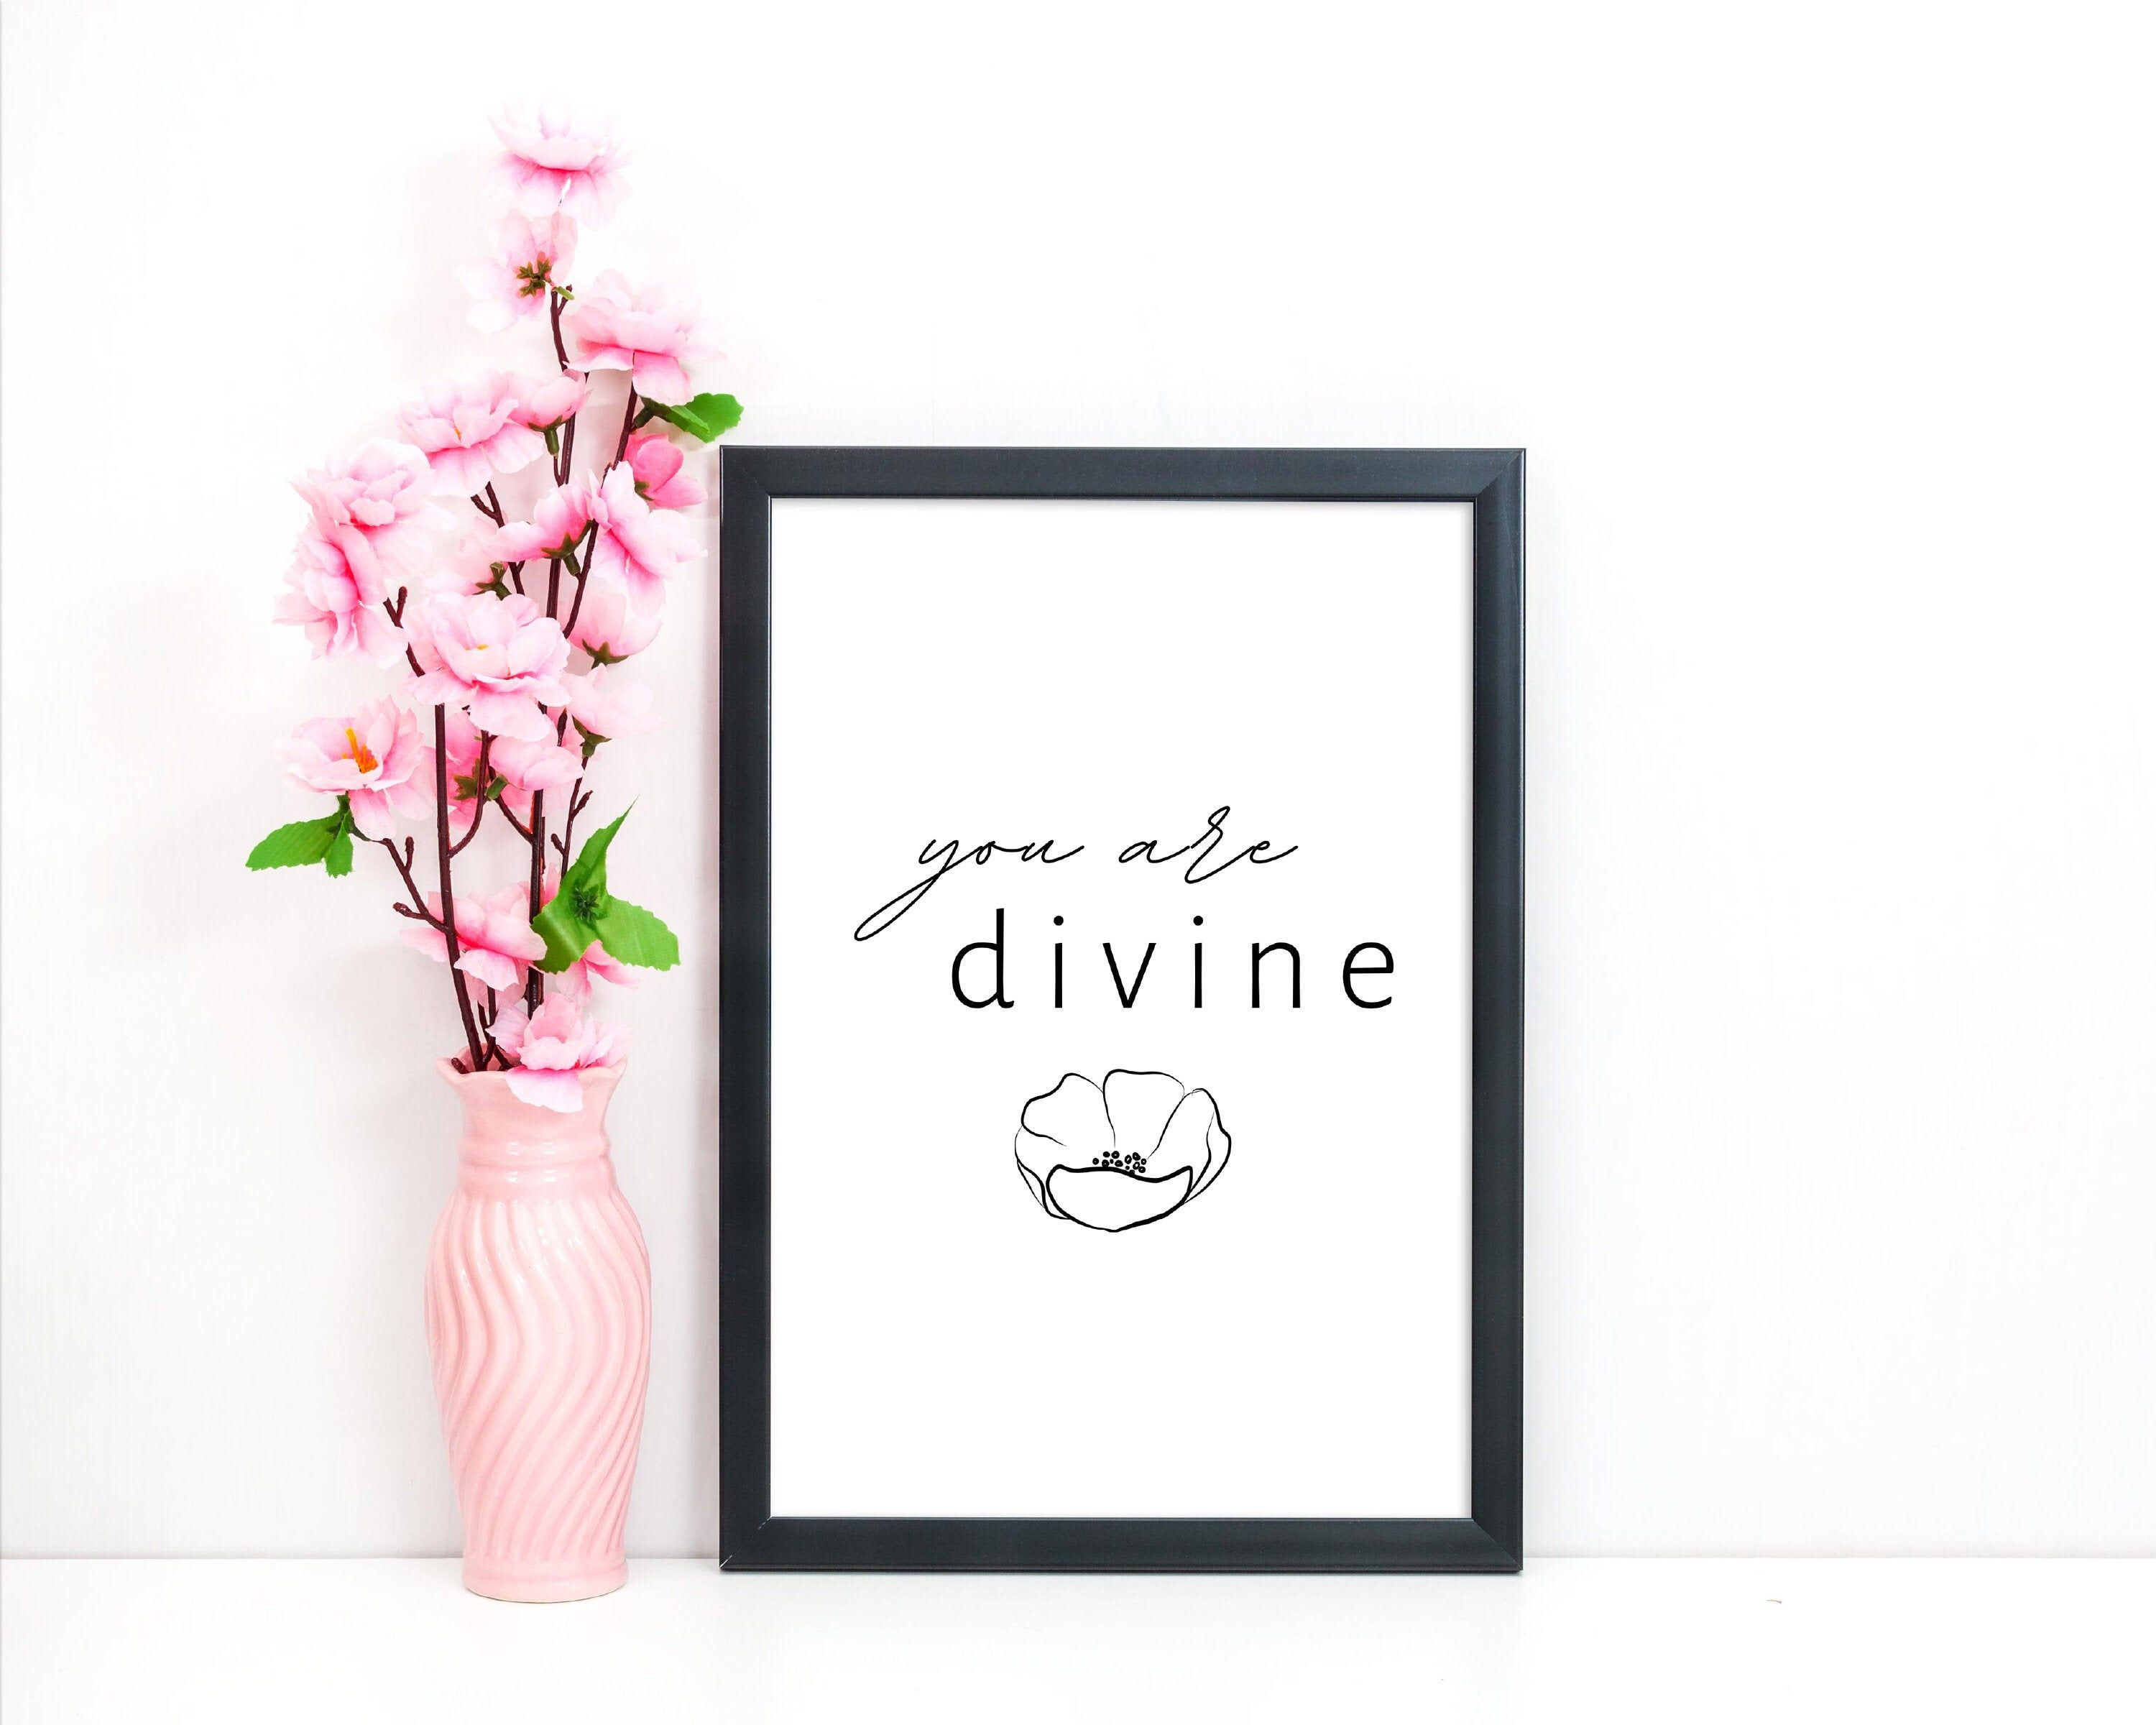 You are divine Digital Print Modern Wall Decor Typography   Etsy